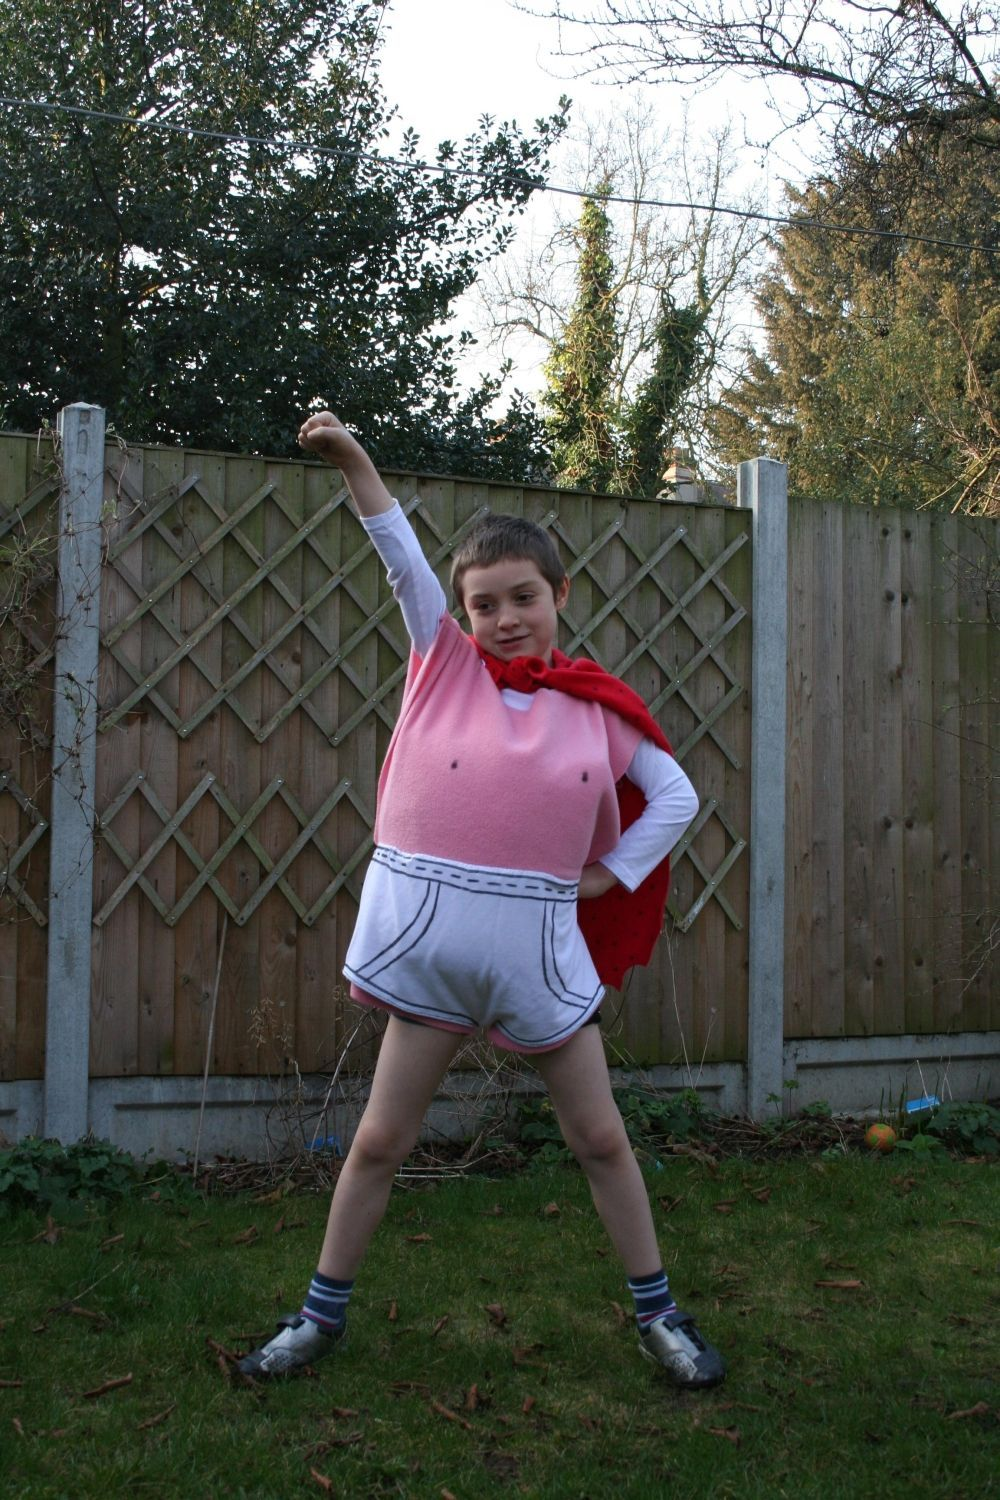 Captain Underpants for Book Day Parade at school.  We had fun making this! #captainunderpantscostume Captain Underpants for Book Day Parade at school.  We had fun making this! #captainunderpantscostume